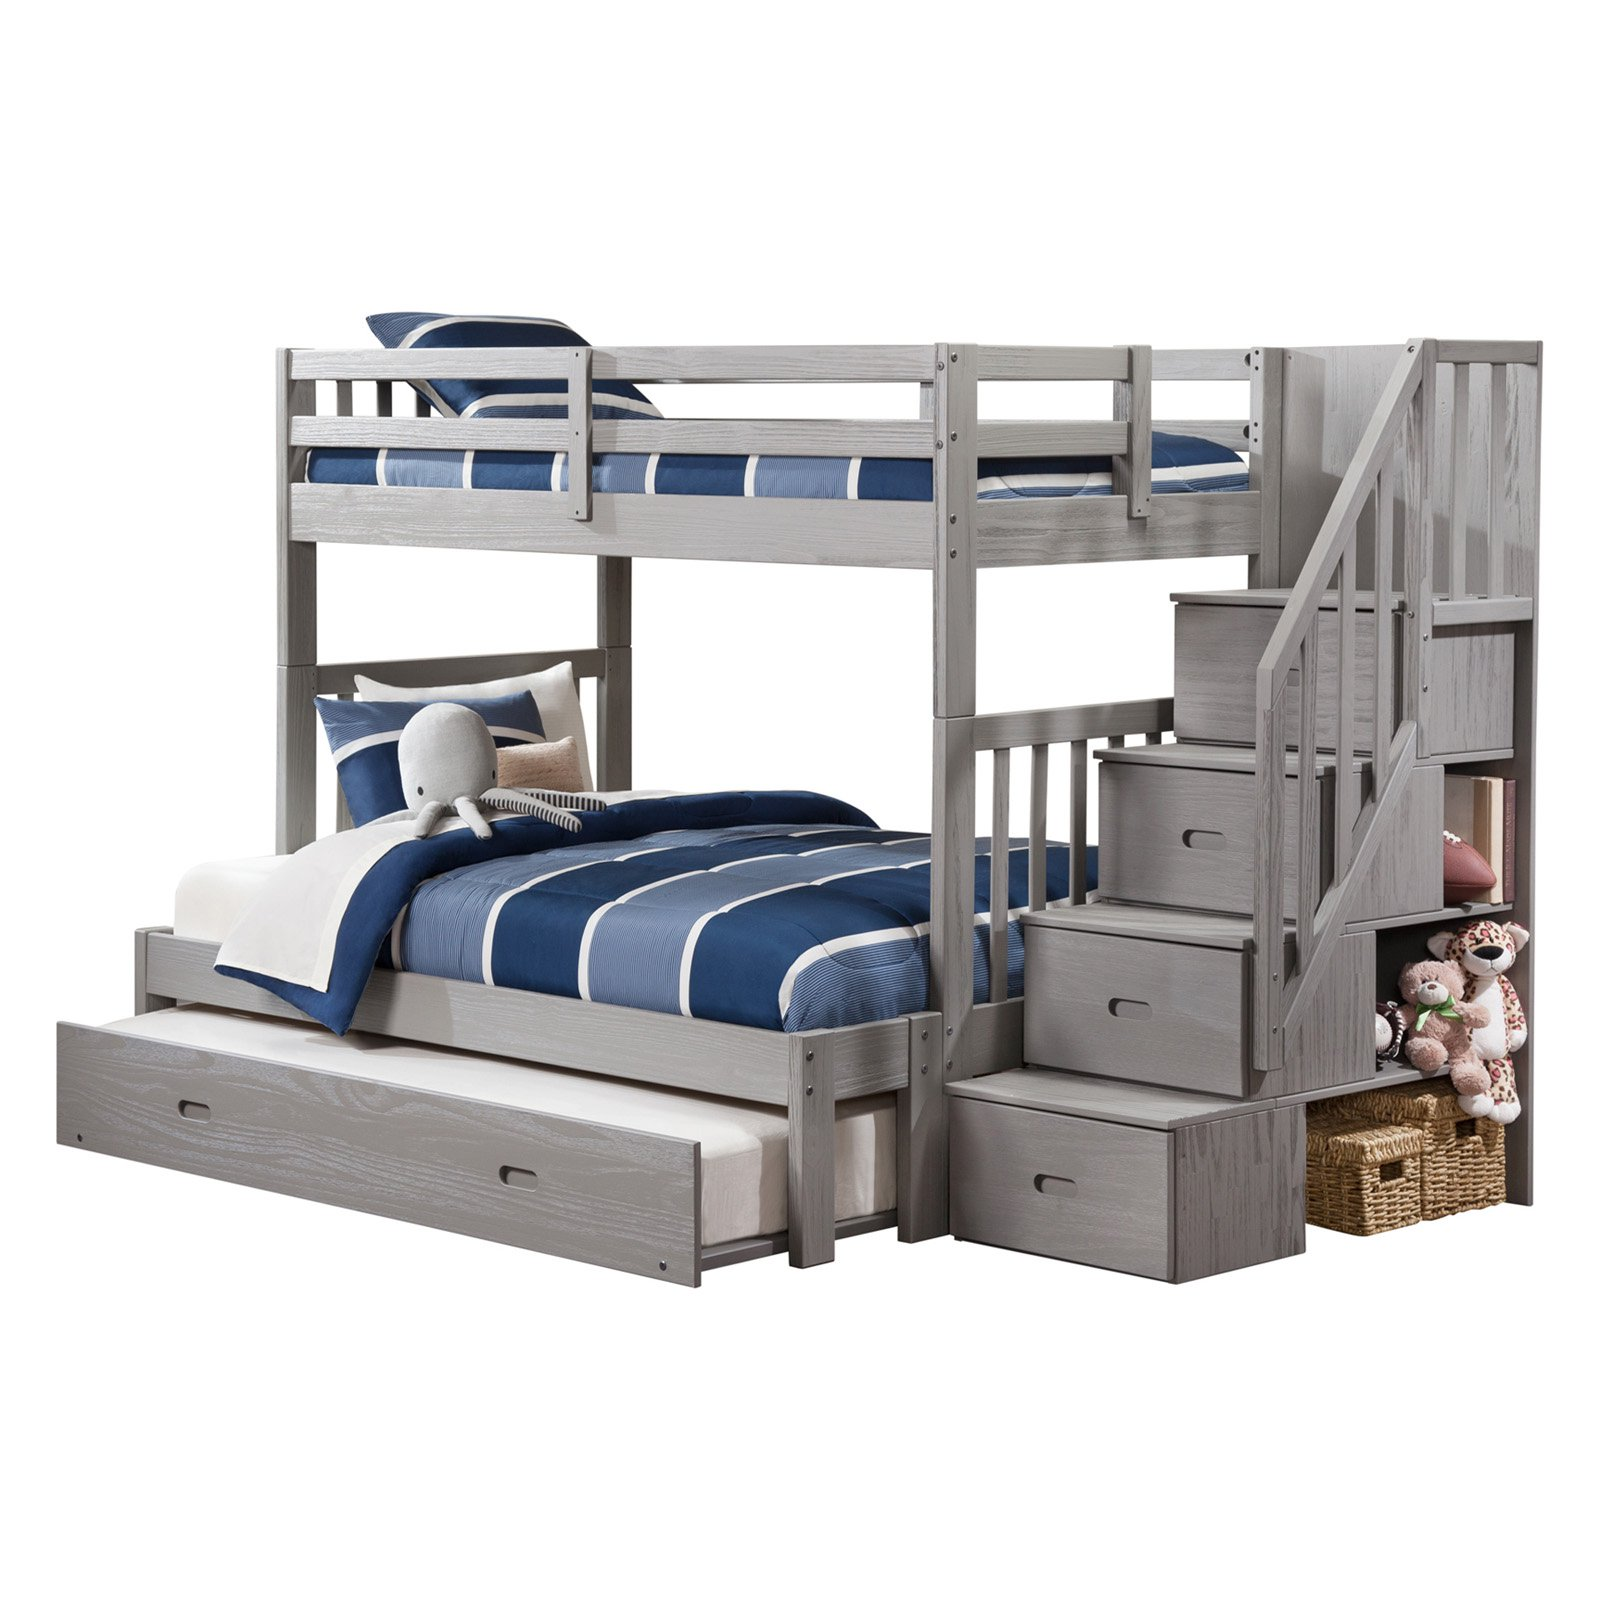 Cascade Staircase Bunk Bed Twin Over Full In Brushed Gray Walmart Com Walmart Com